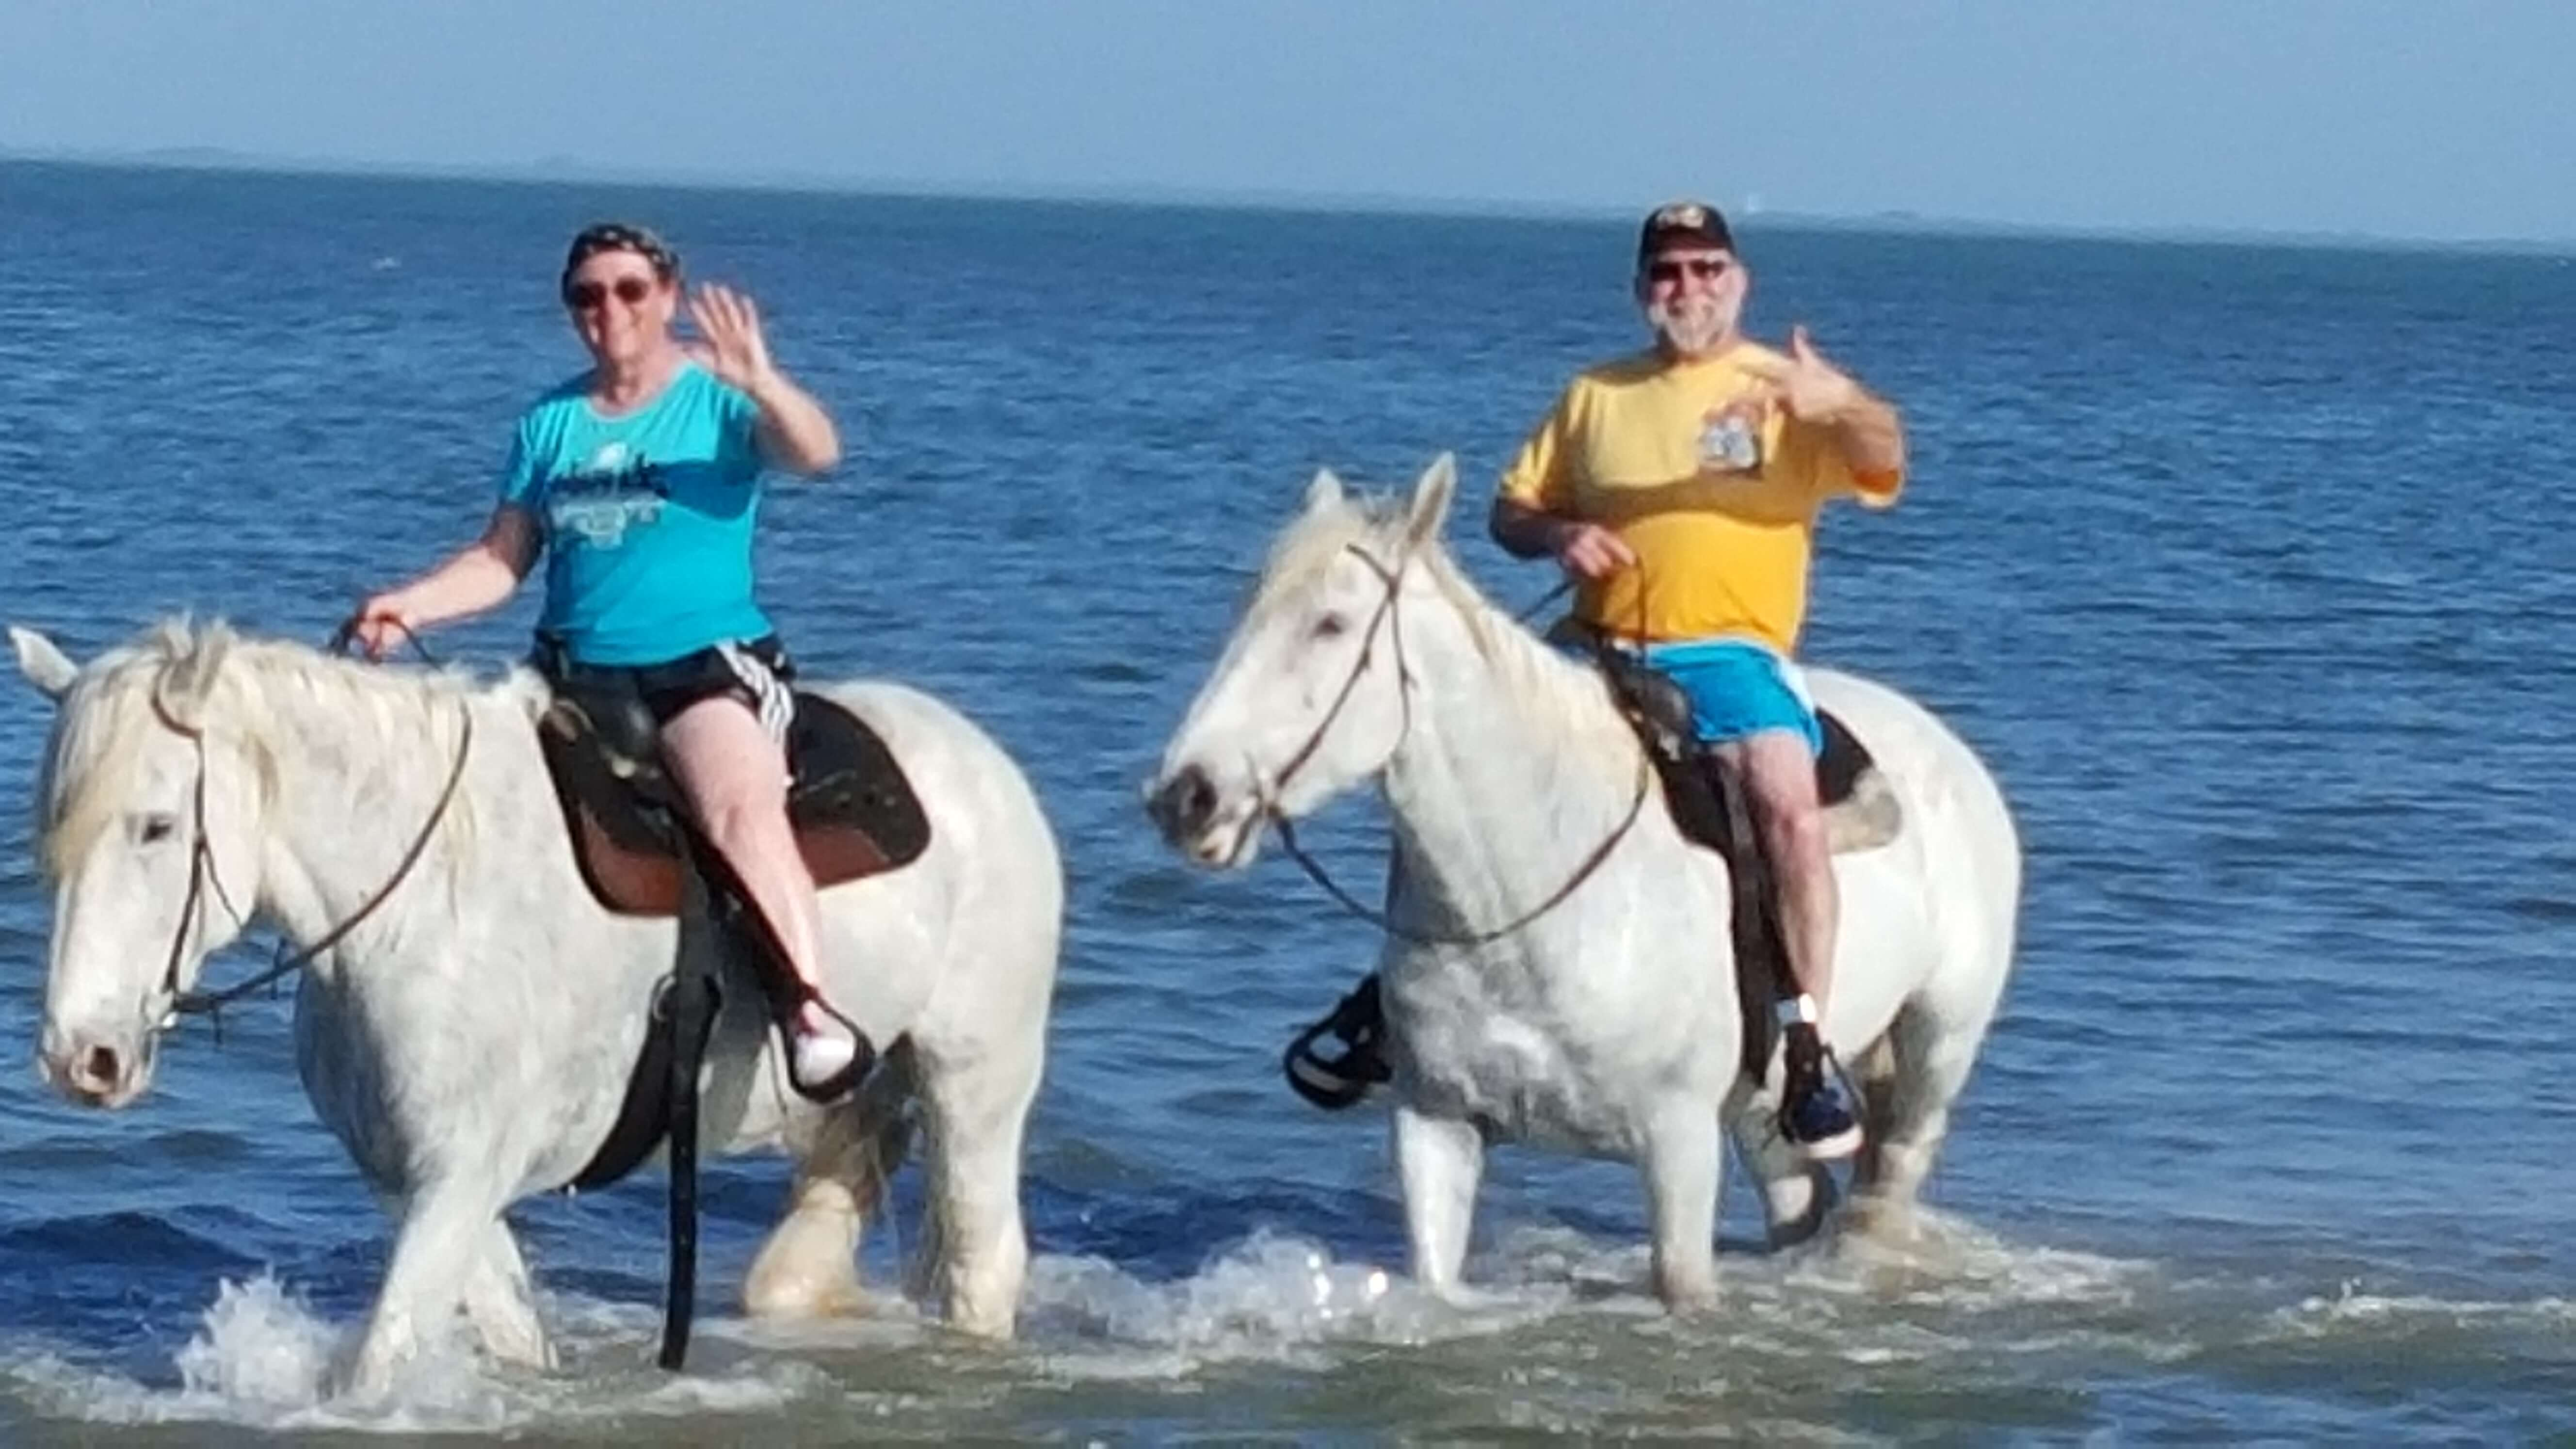 Beach Horse Back Rides Bucket List St Petersburg Florida